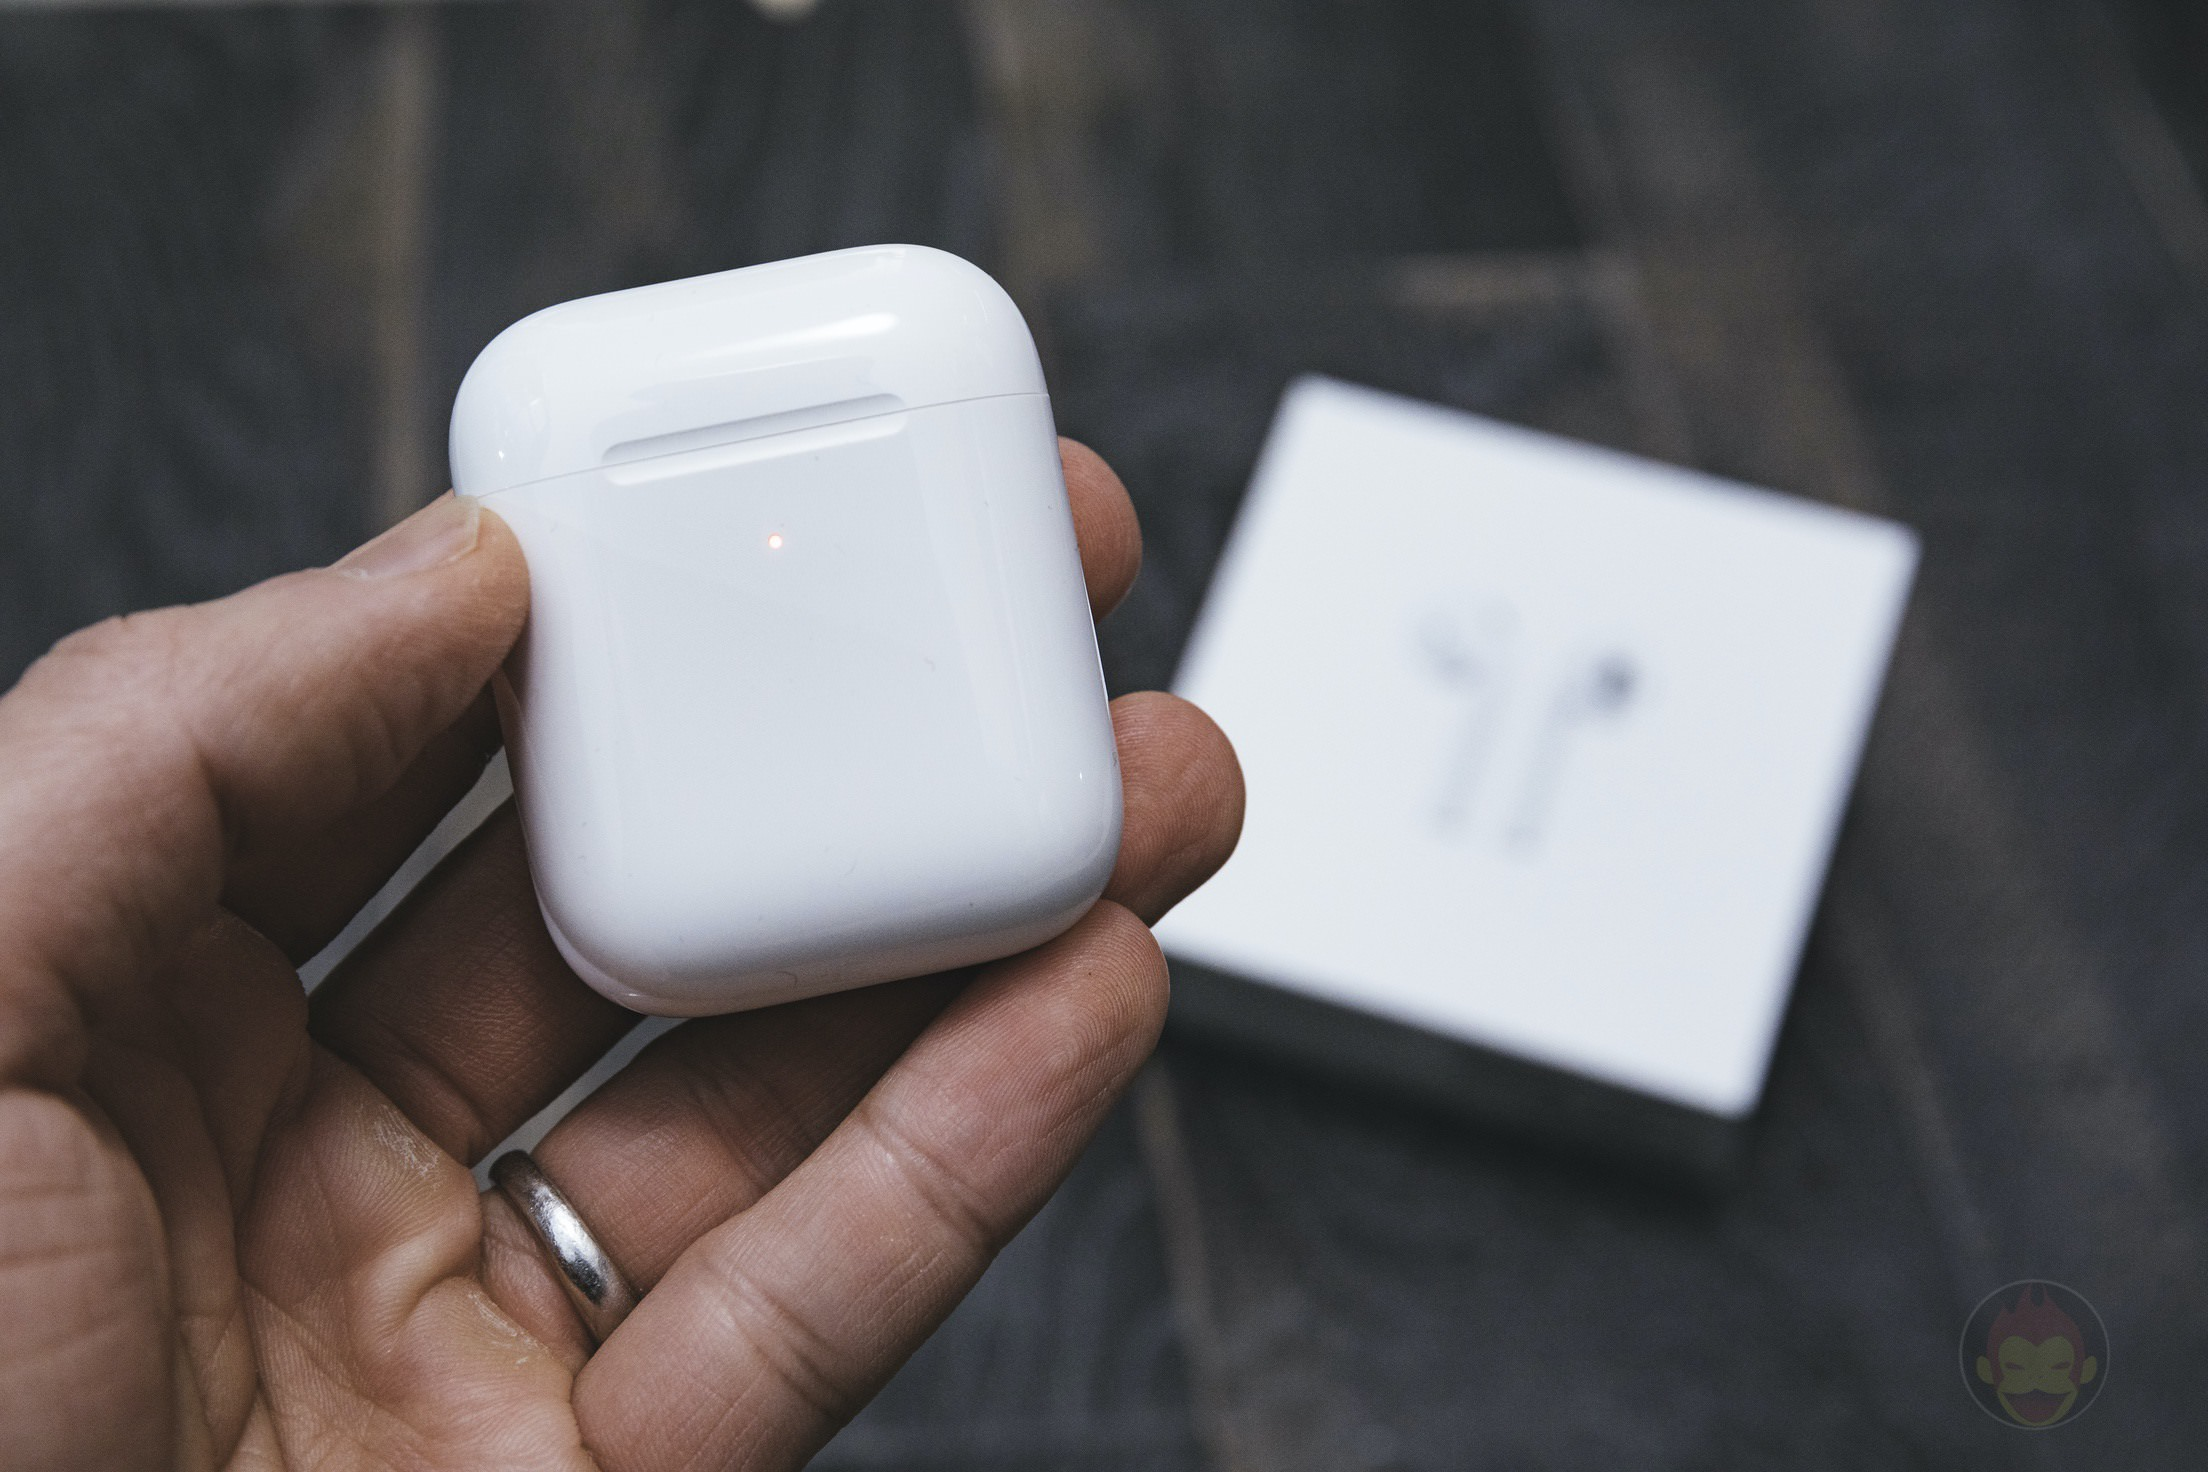 AirPods-2nd-Generation-2019-Review-02.jpg